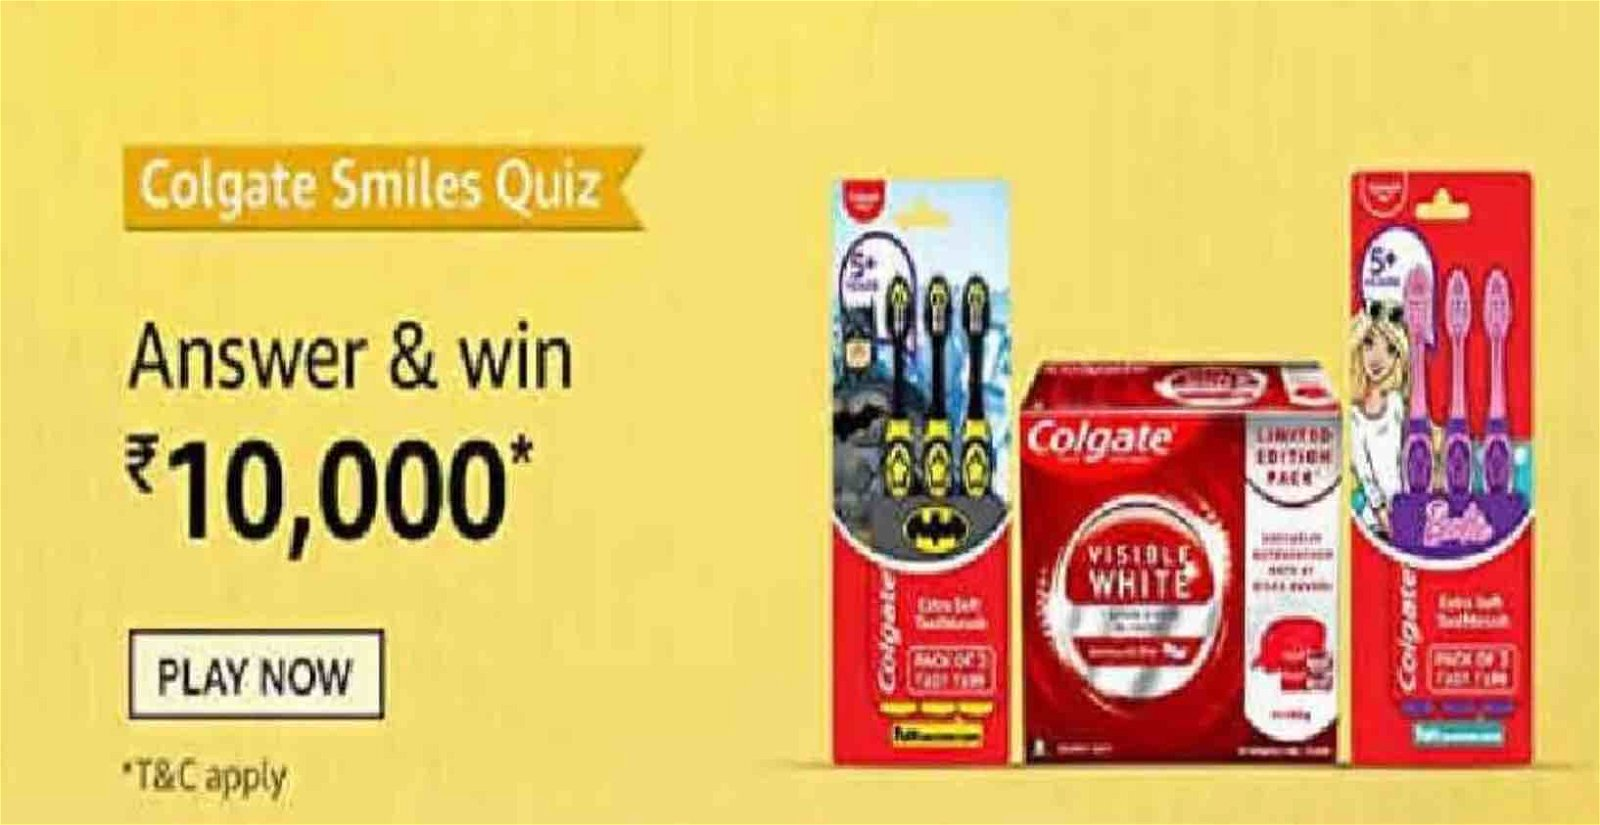 Amazon Colgate Smiles Quiz - What are the contents for the limited edition Colgate Visible White Toothpaste pack?